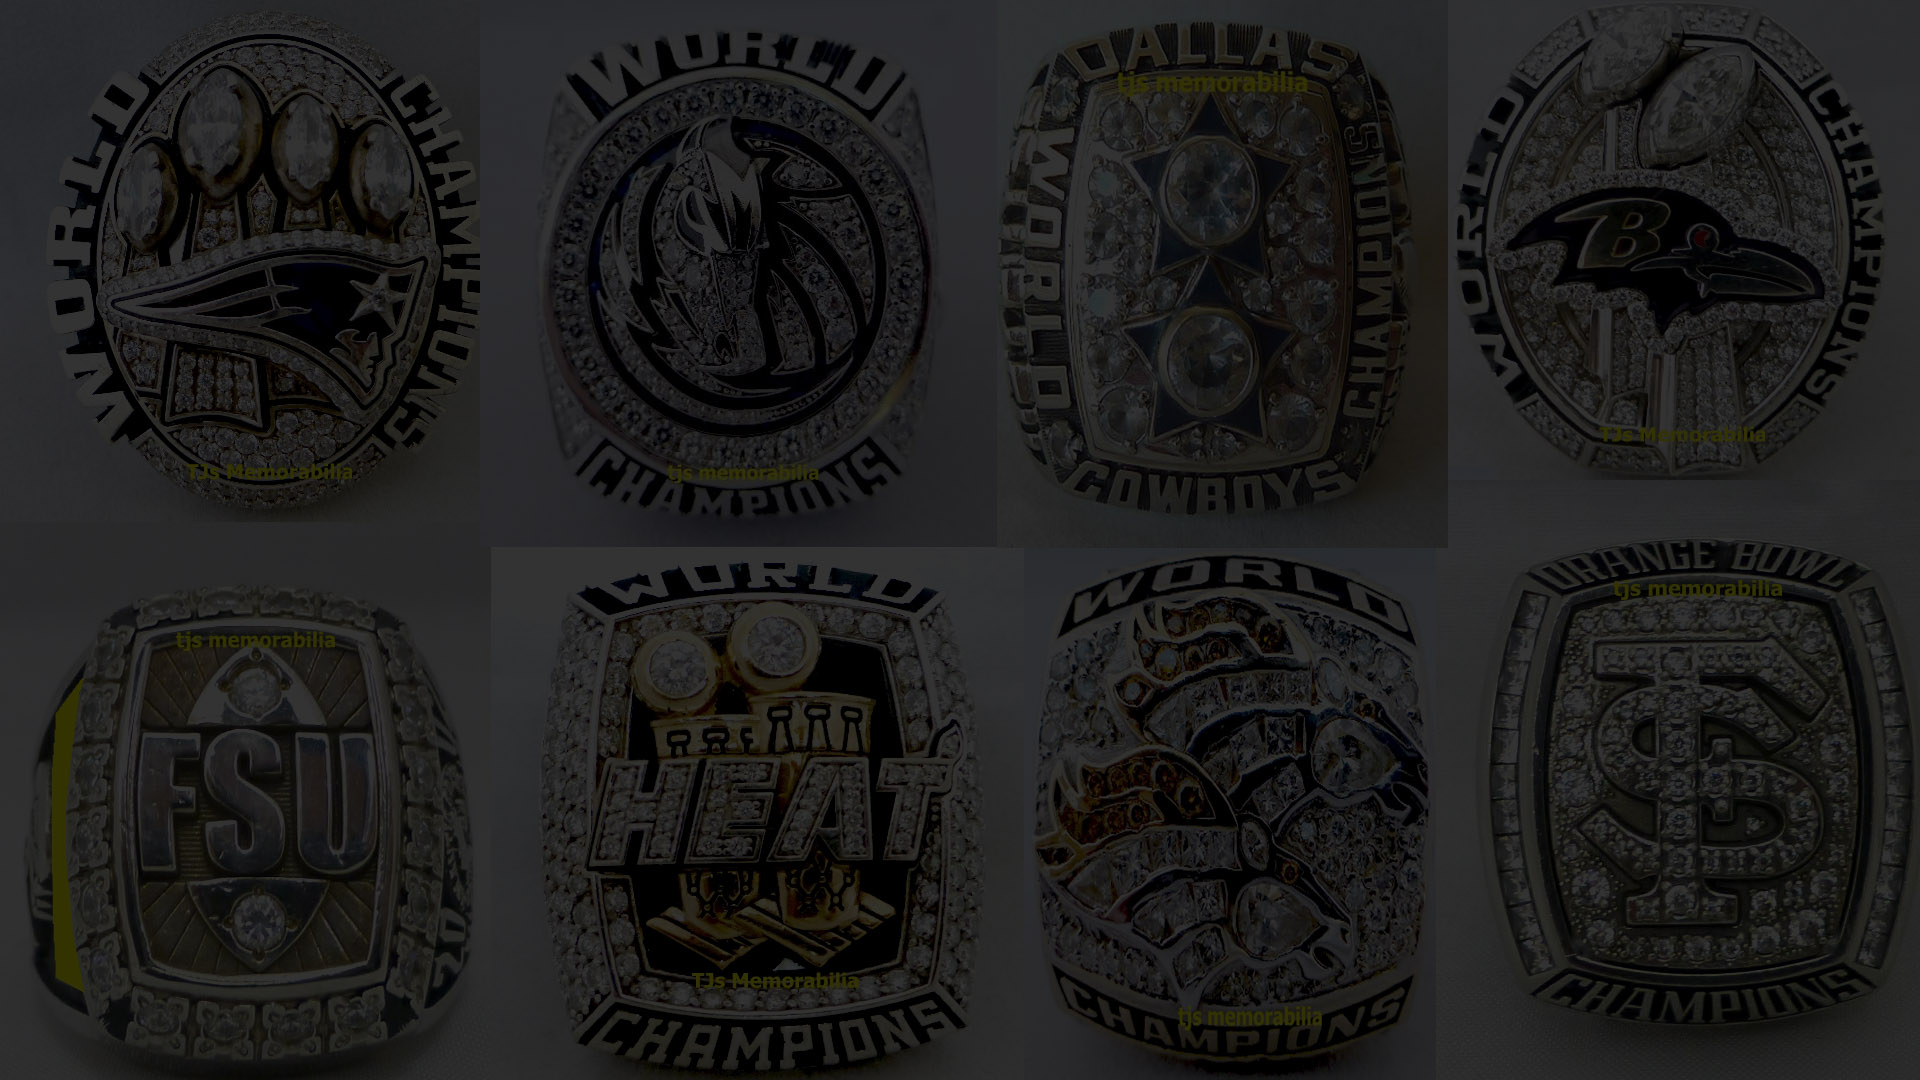 Home - Championship Sports Rings, Memorabilia and Awards